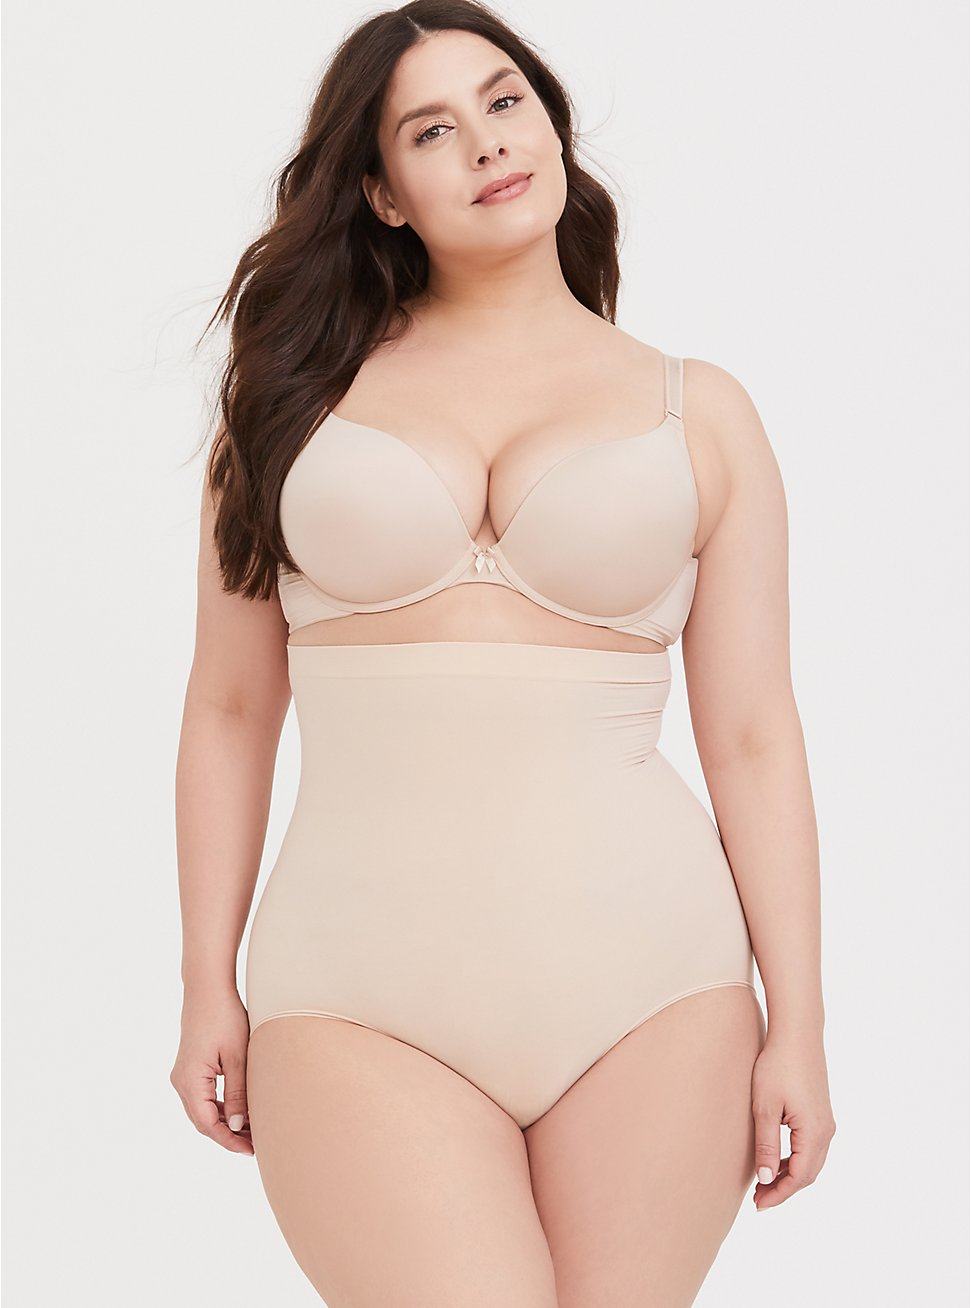 Best Online  Shapewear Deals  2020